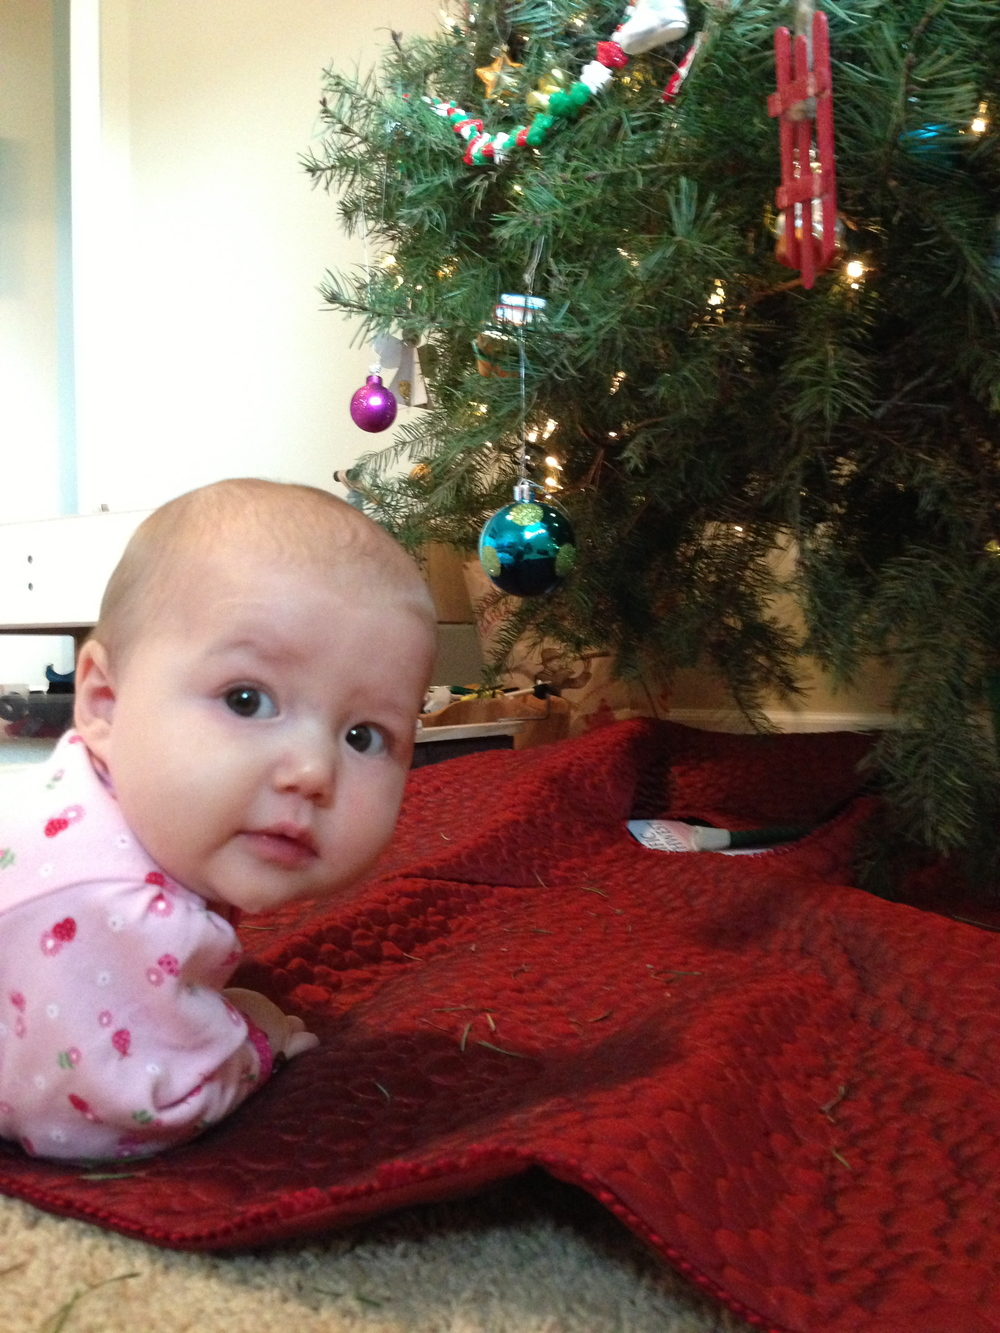 adeline has had her sights set on the blue ornament.